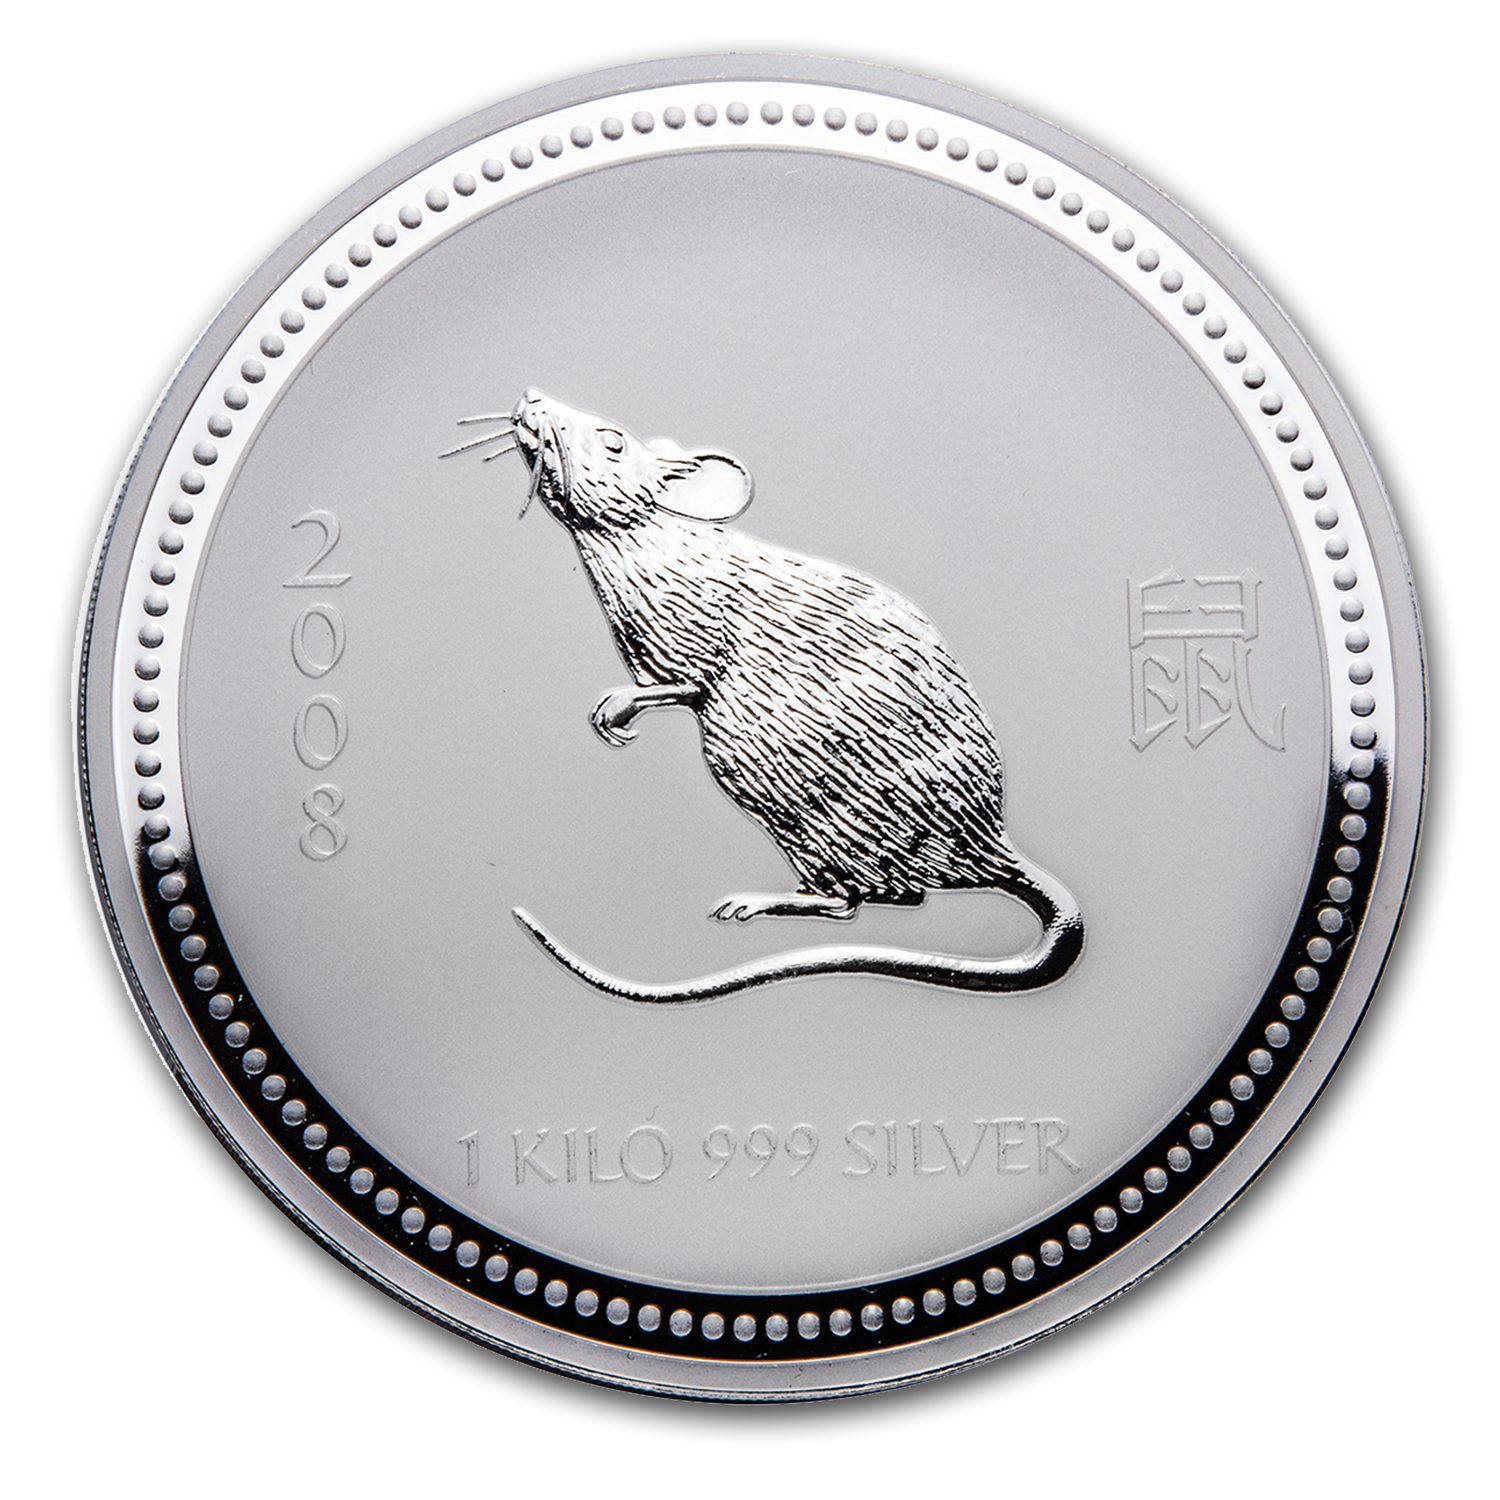 2008 1 kilo Silver Lunar Year of the Mouse (Series I)